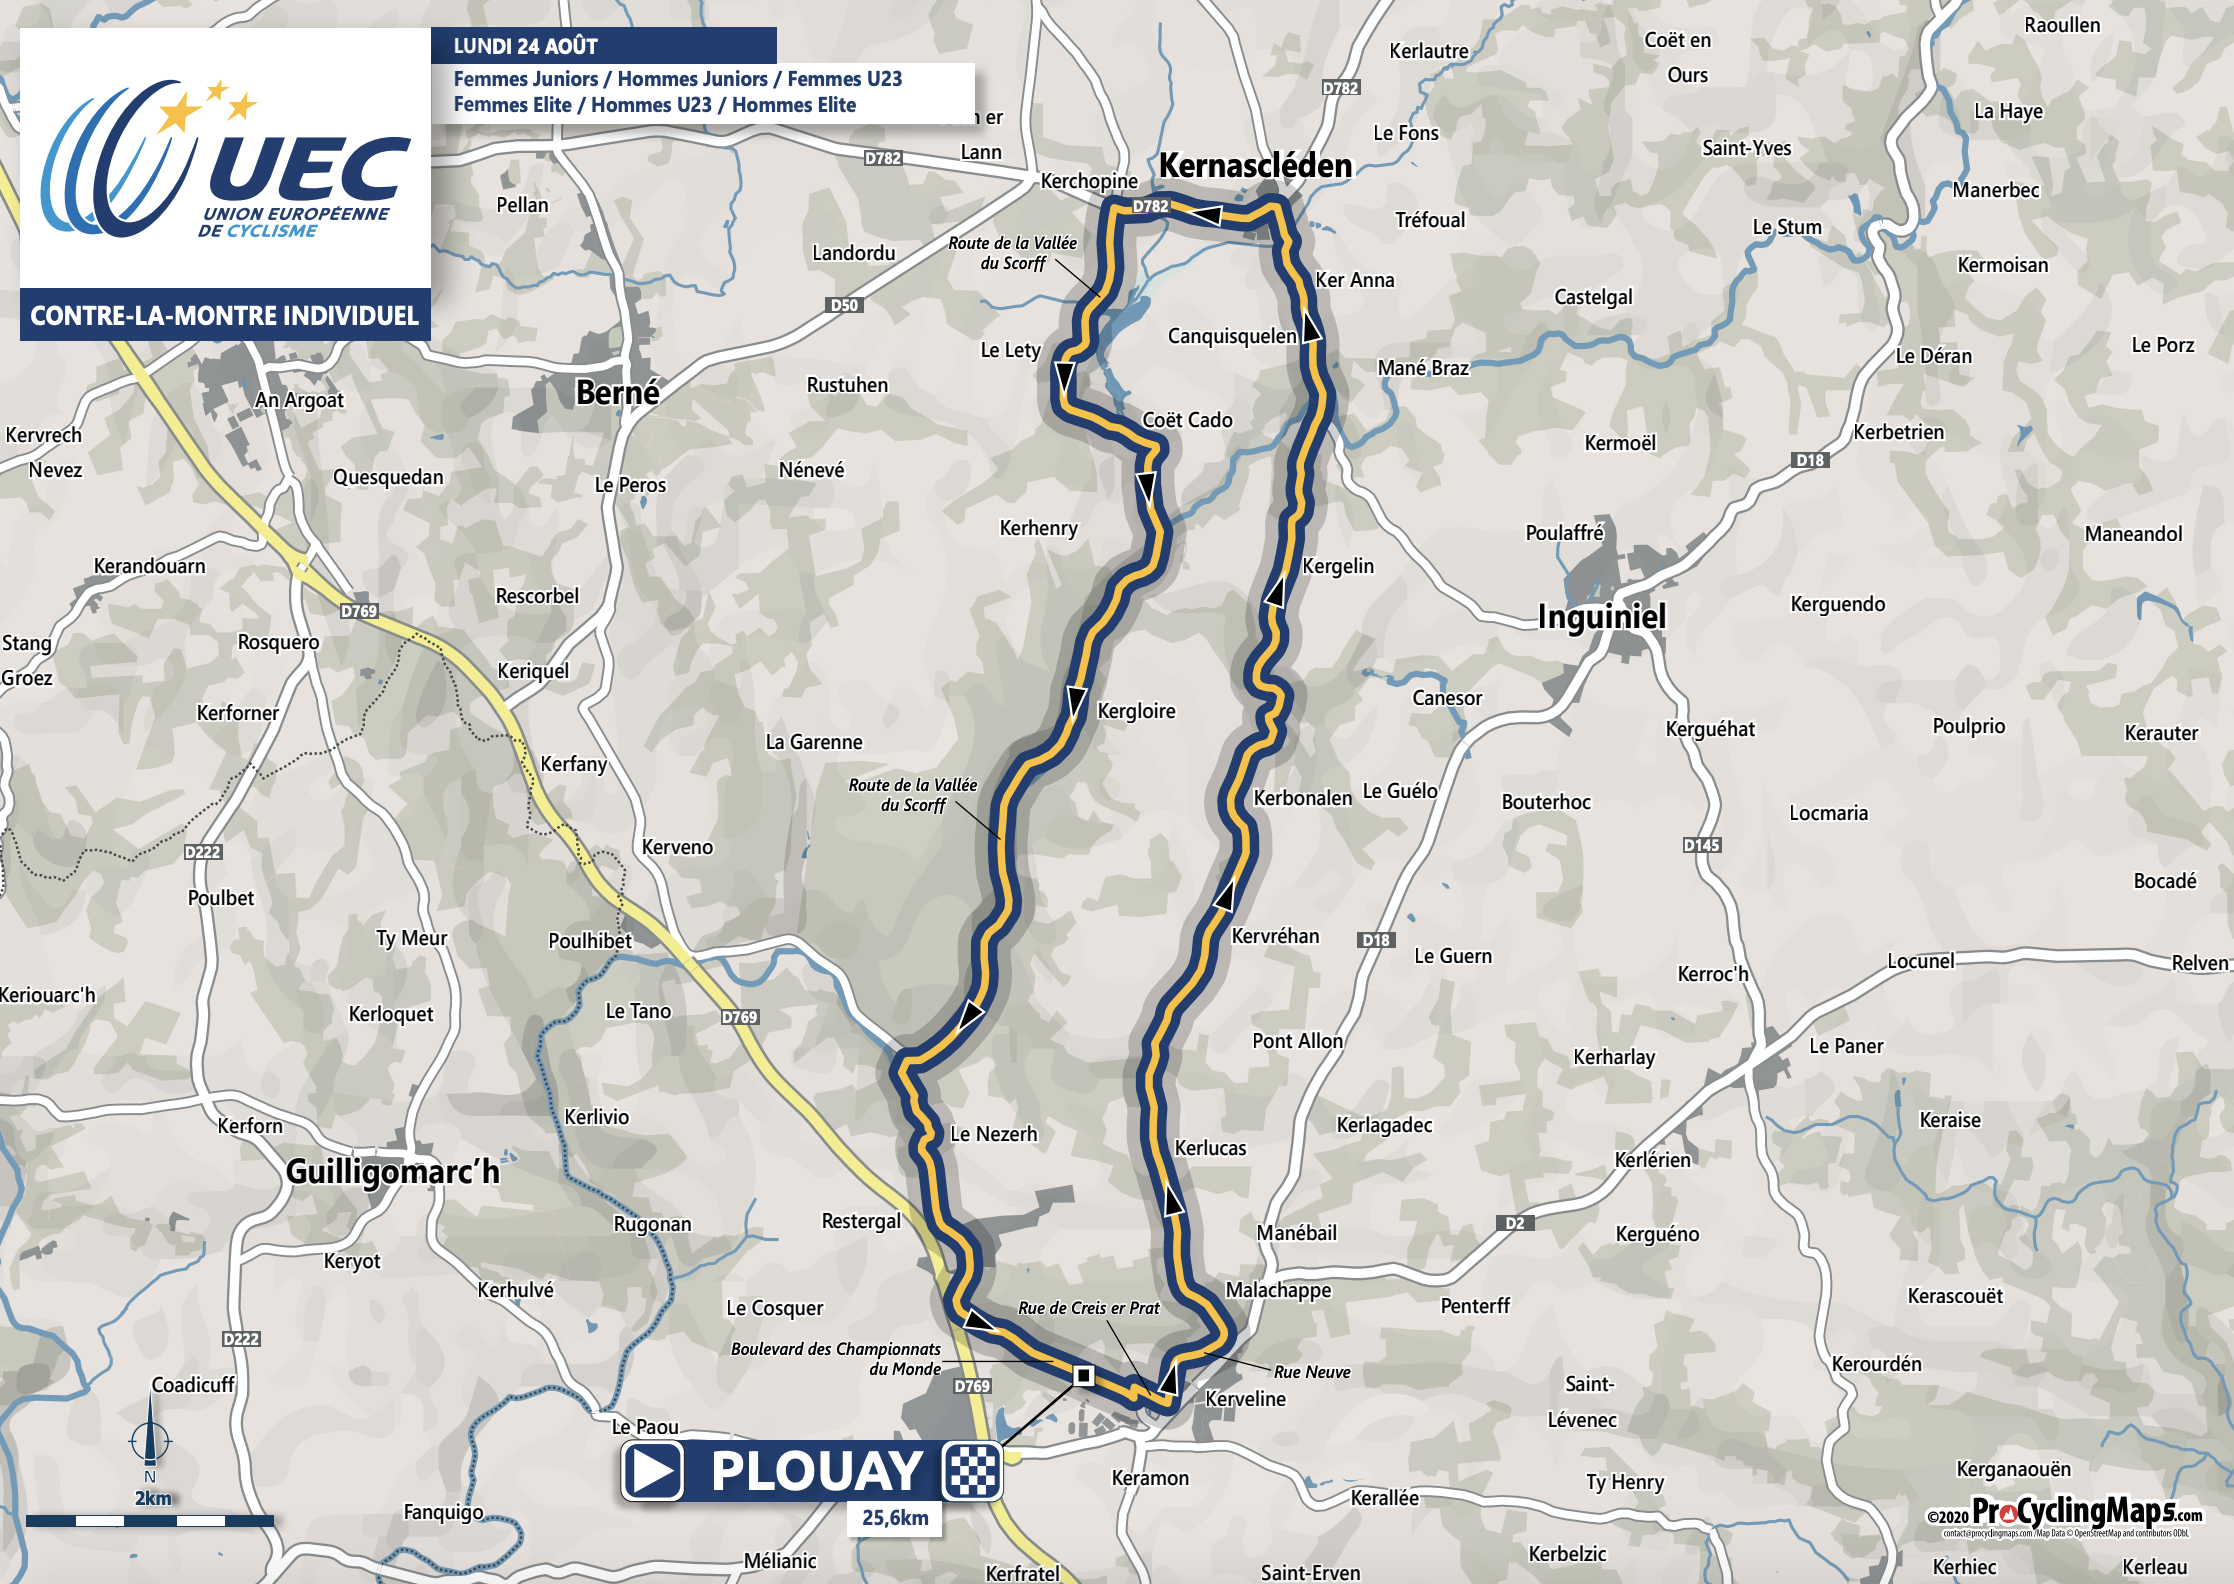 UEC european road championships 2020 time trial map